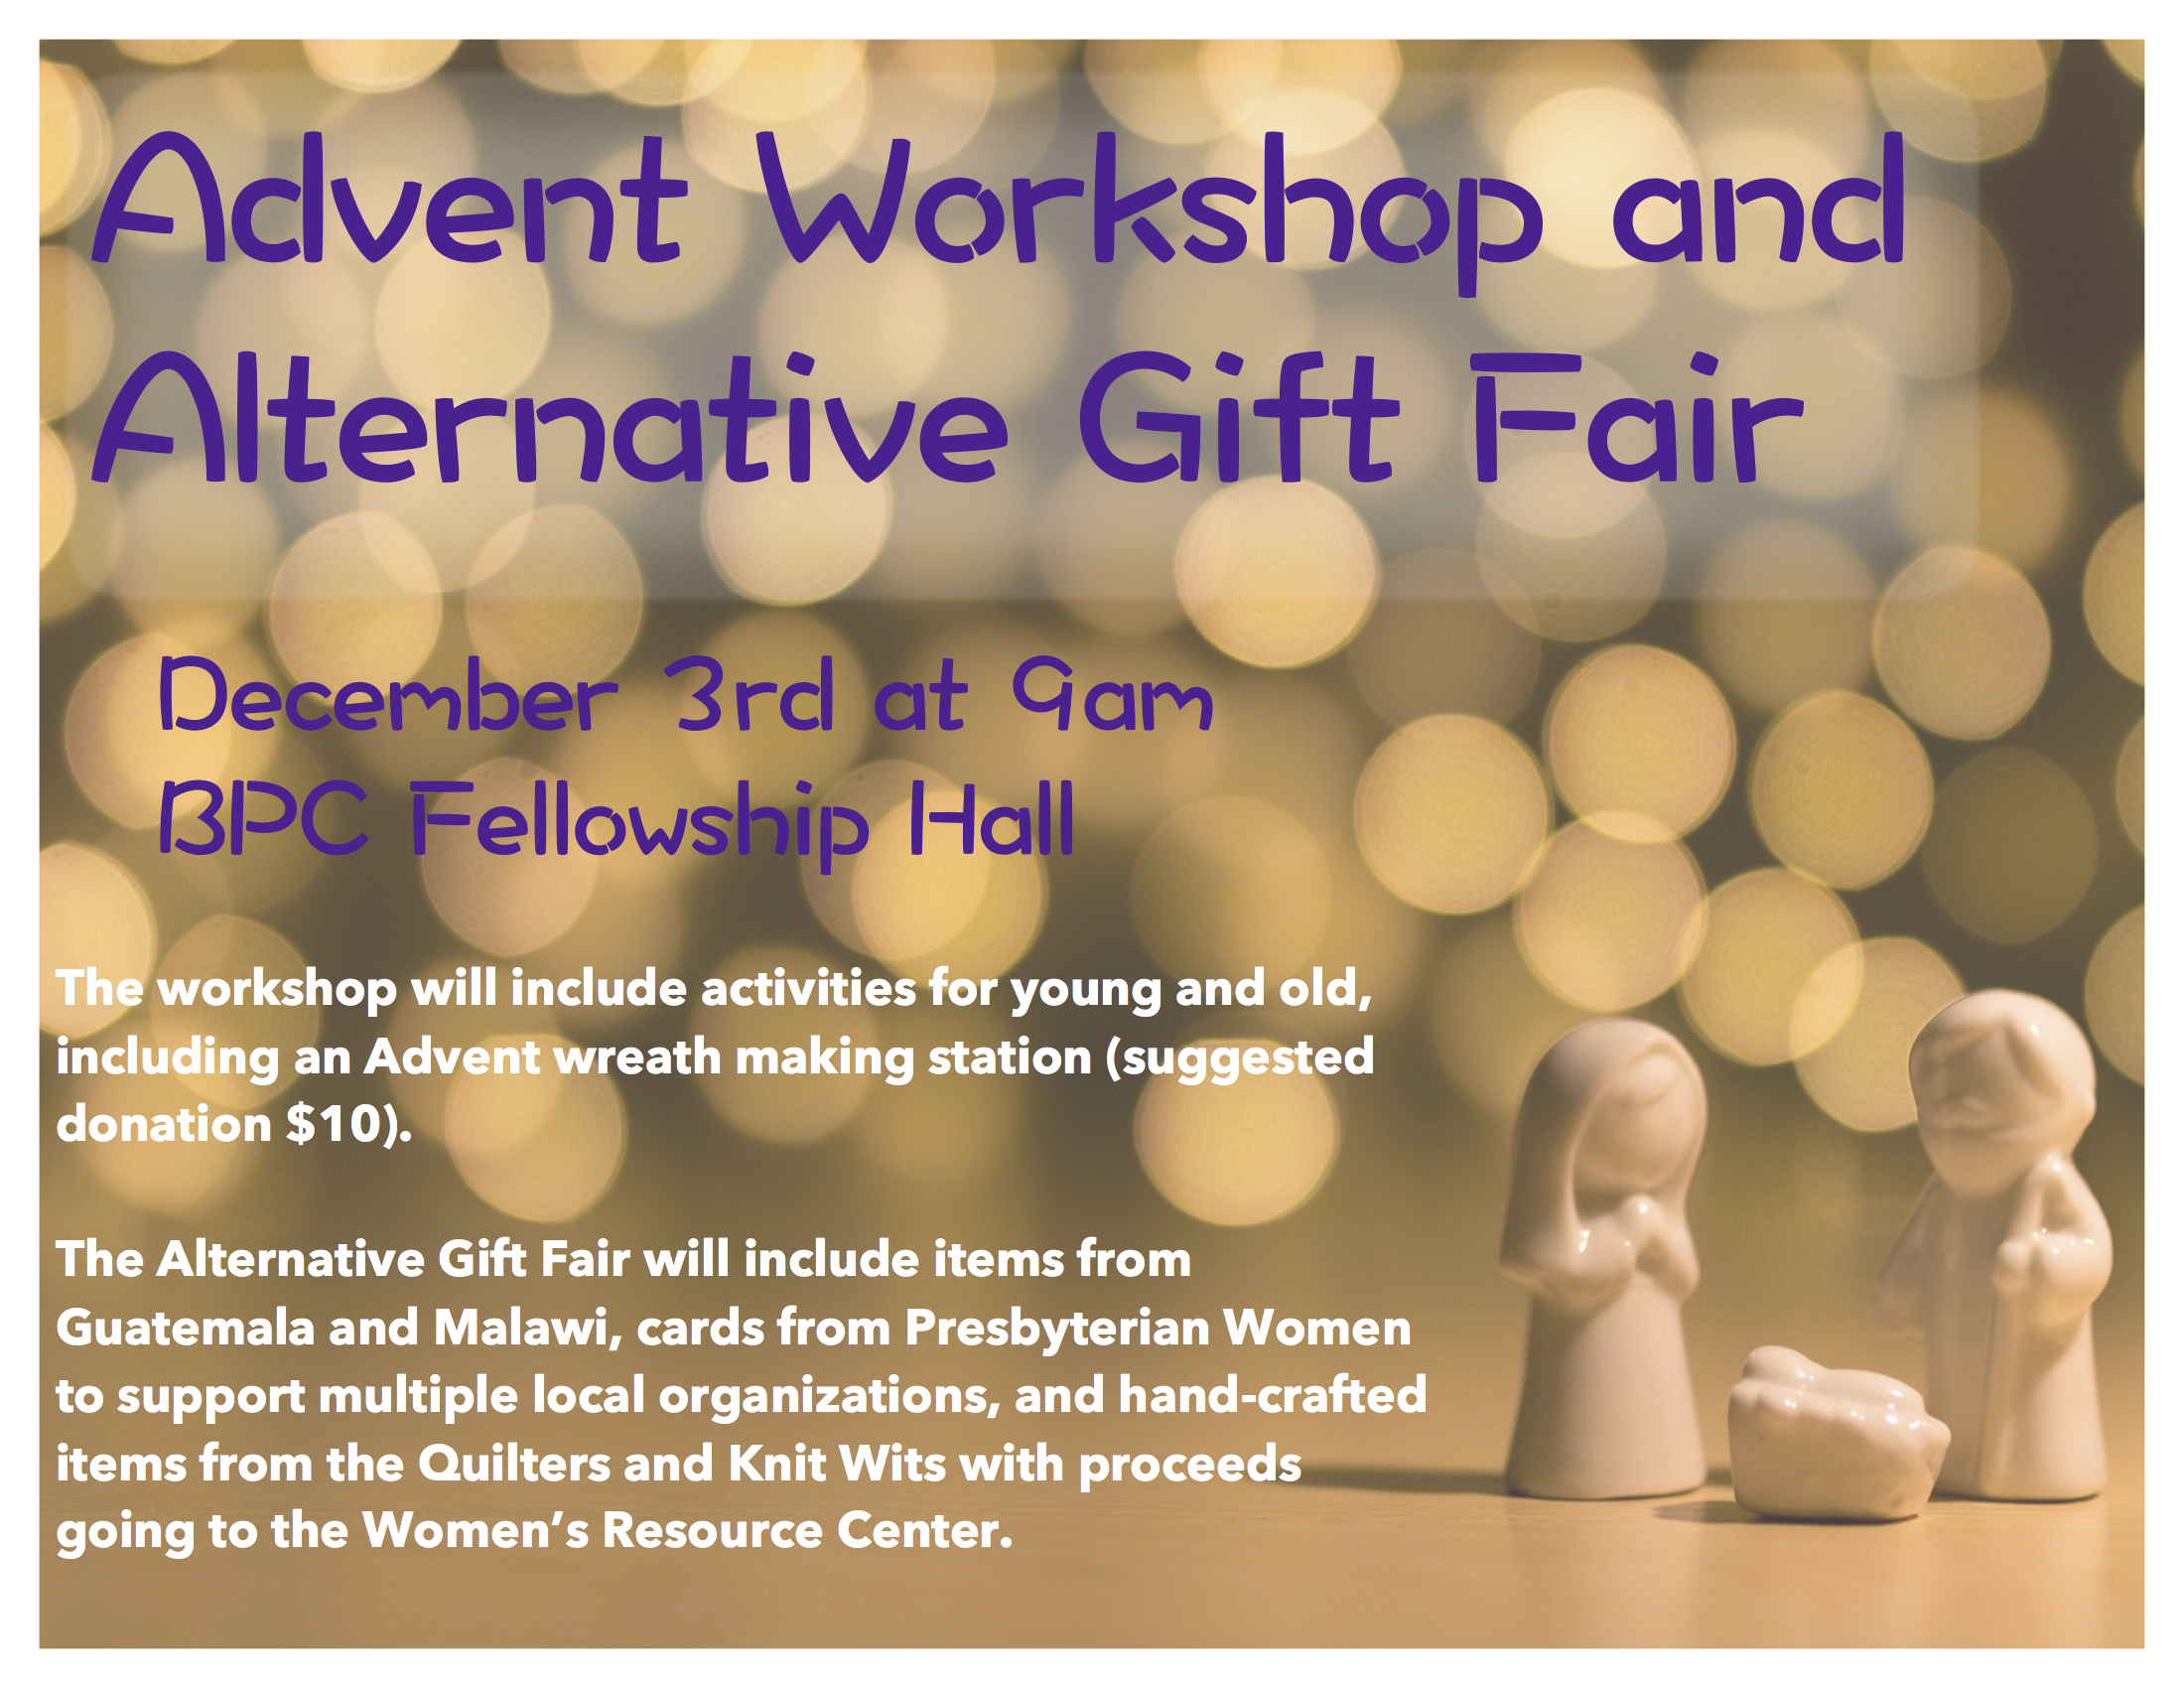 Advent Workshop 2017 flyer.jpg